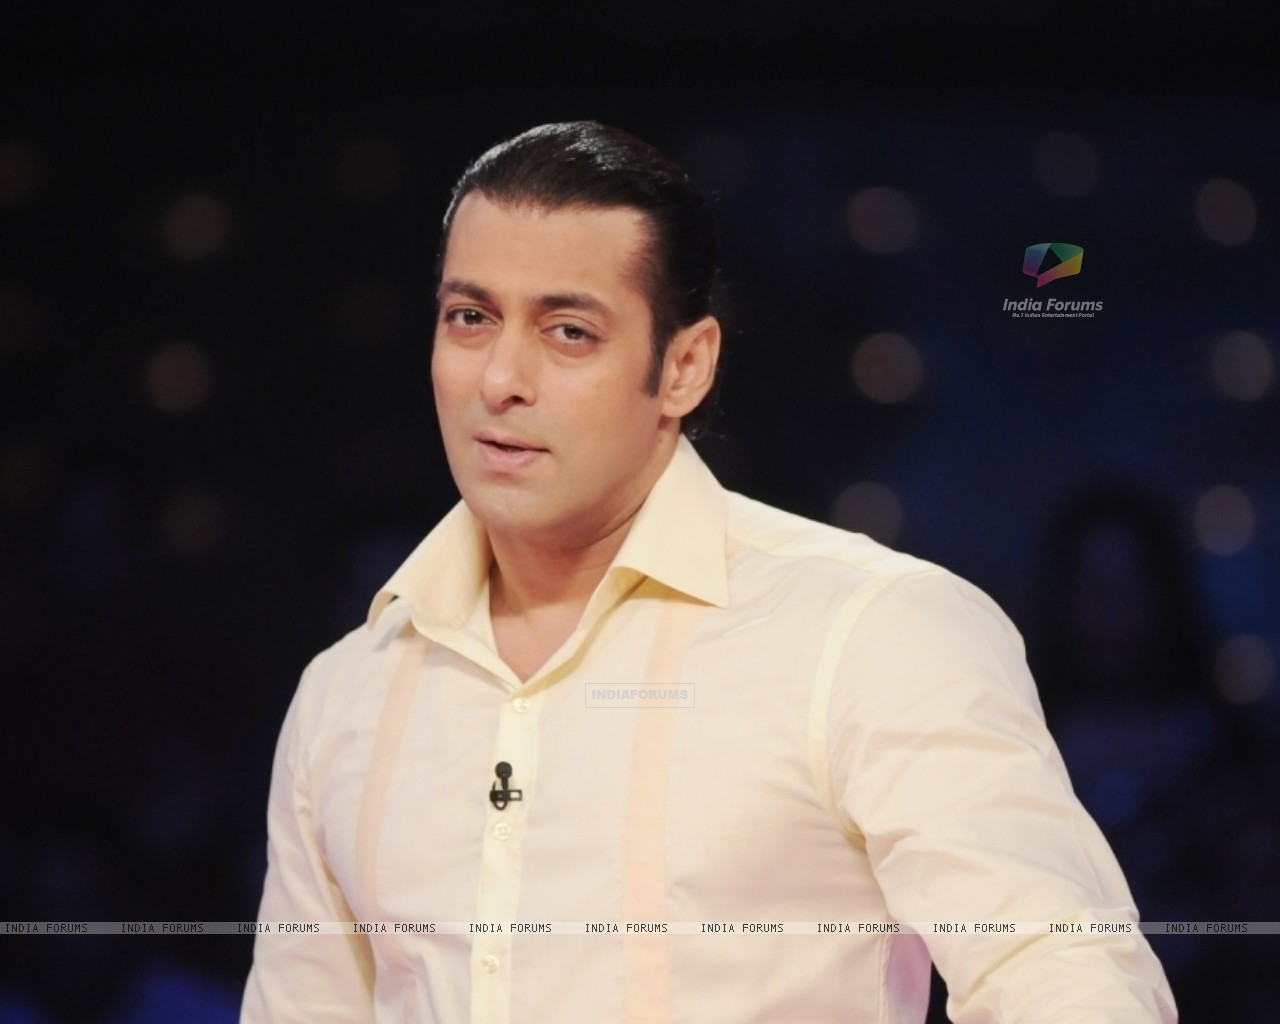 Salman Khan - Wallpaper Actress